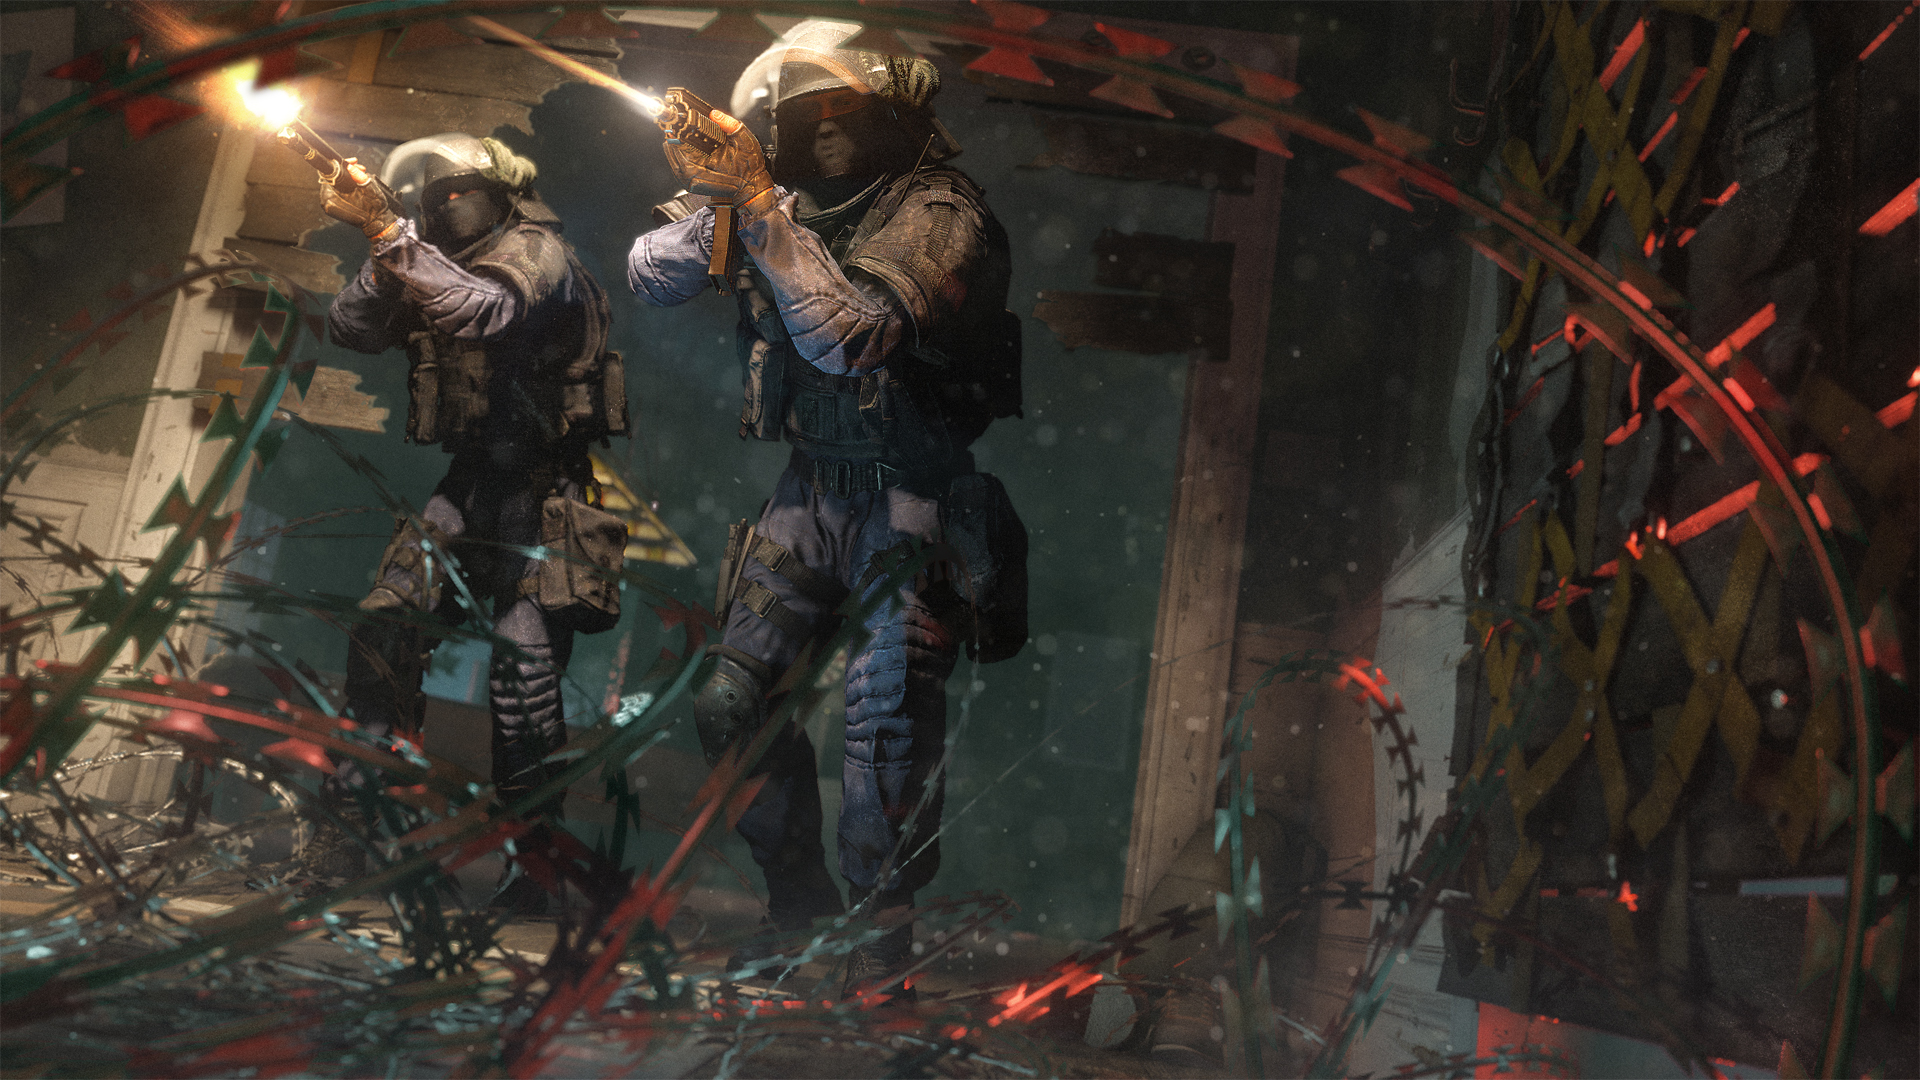 Rainbow Six Siege will be supported with new content for another year